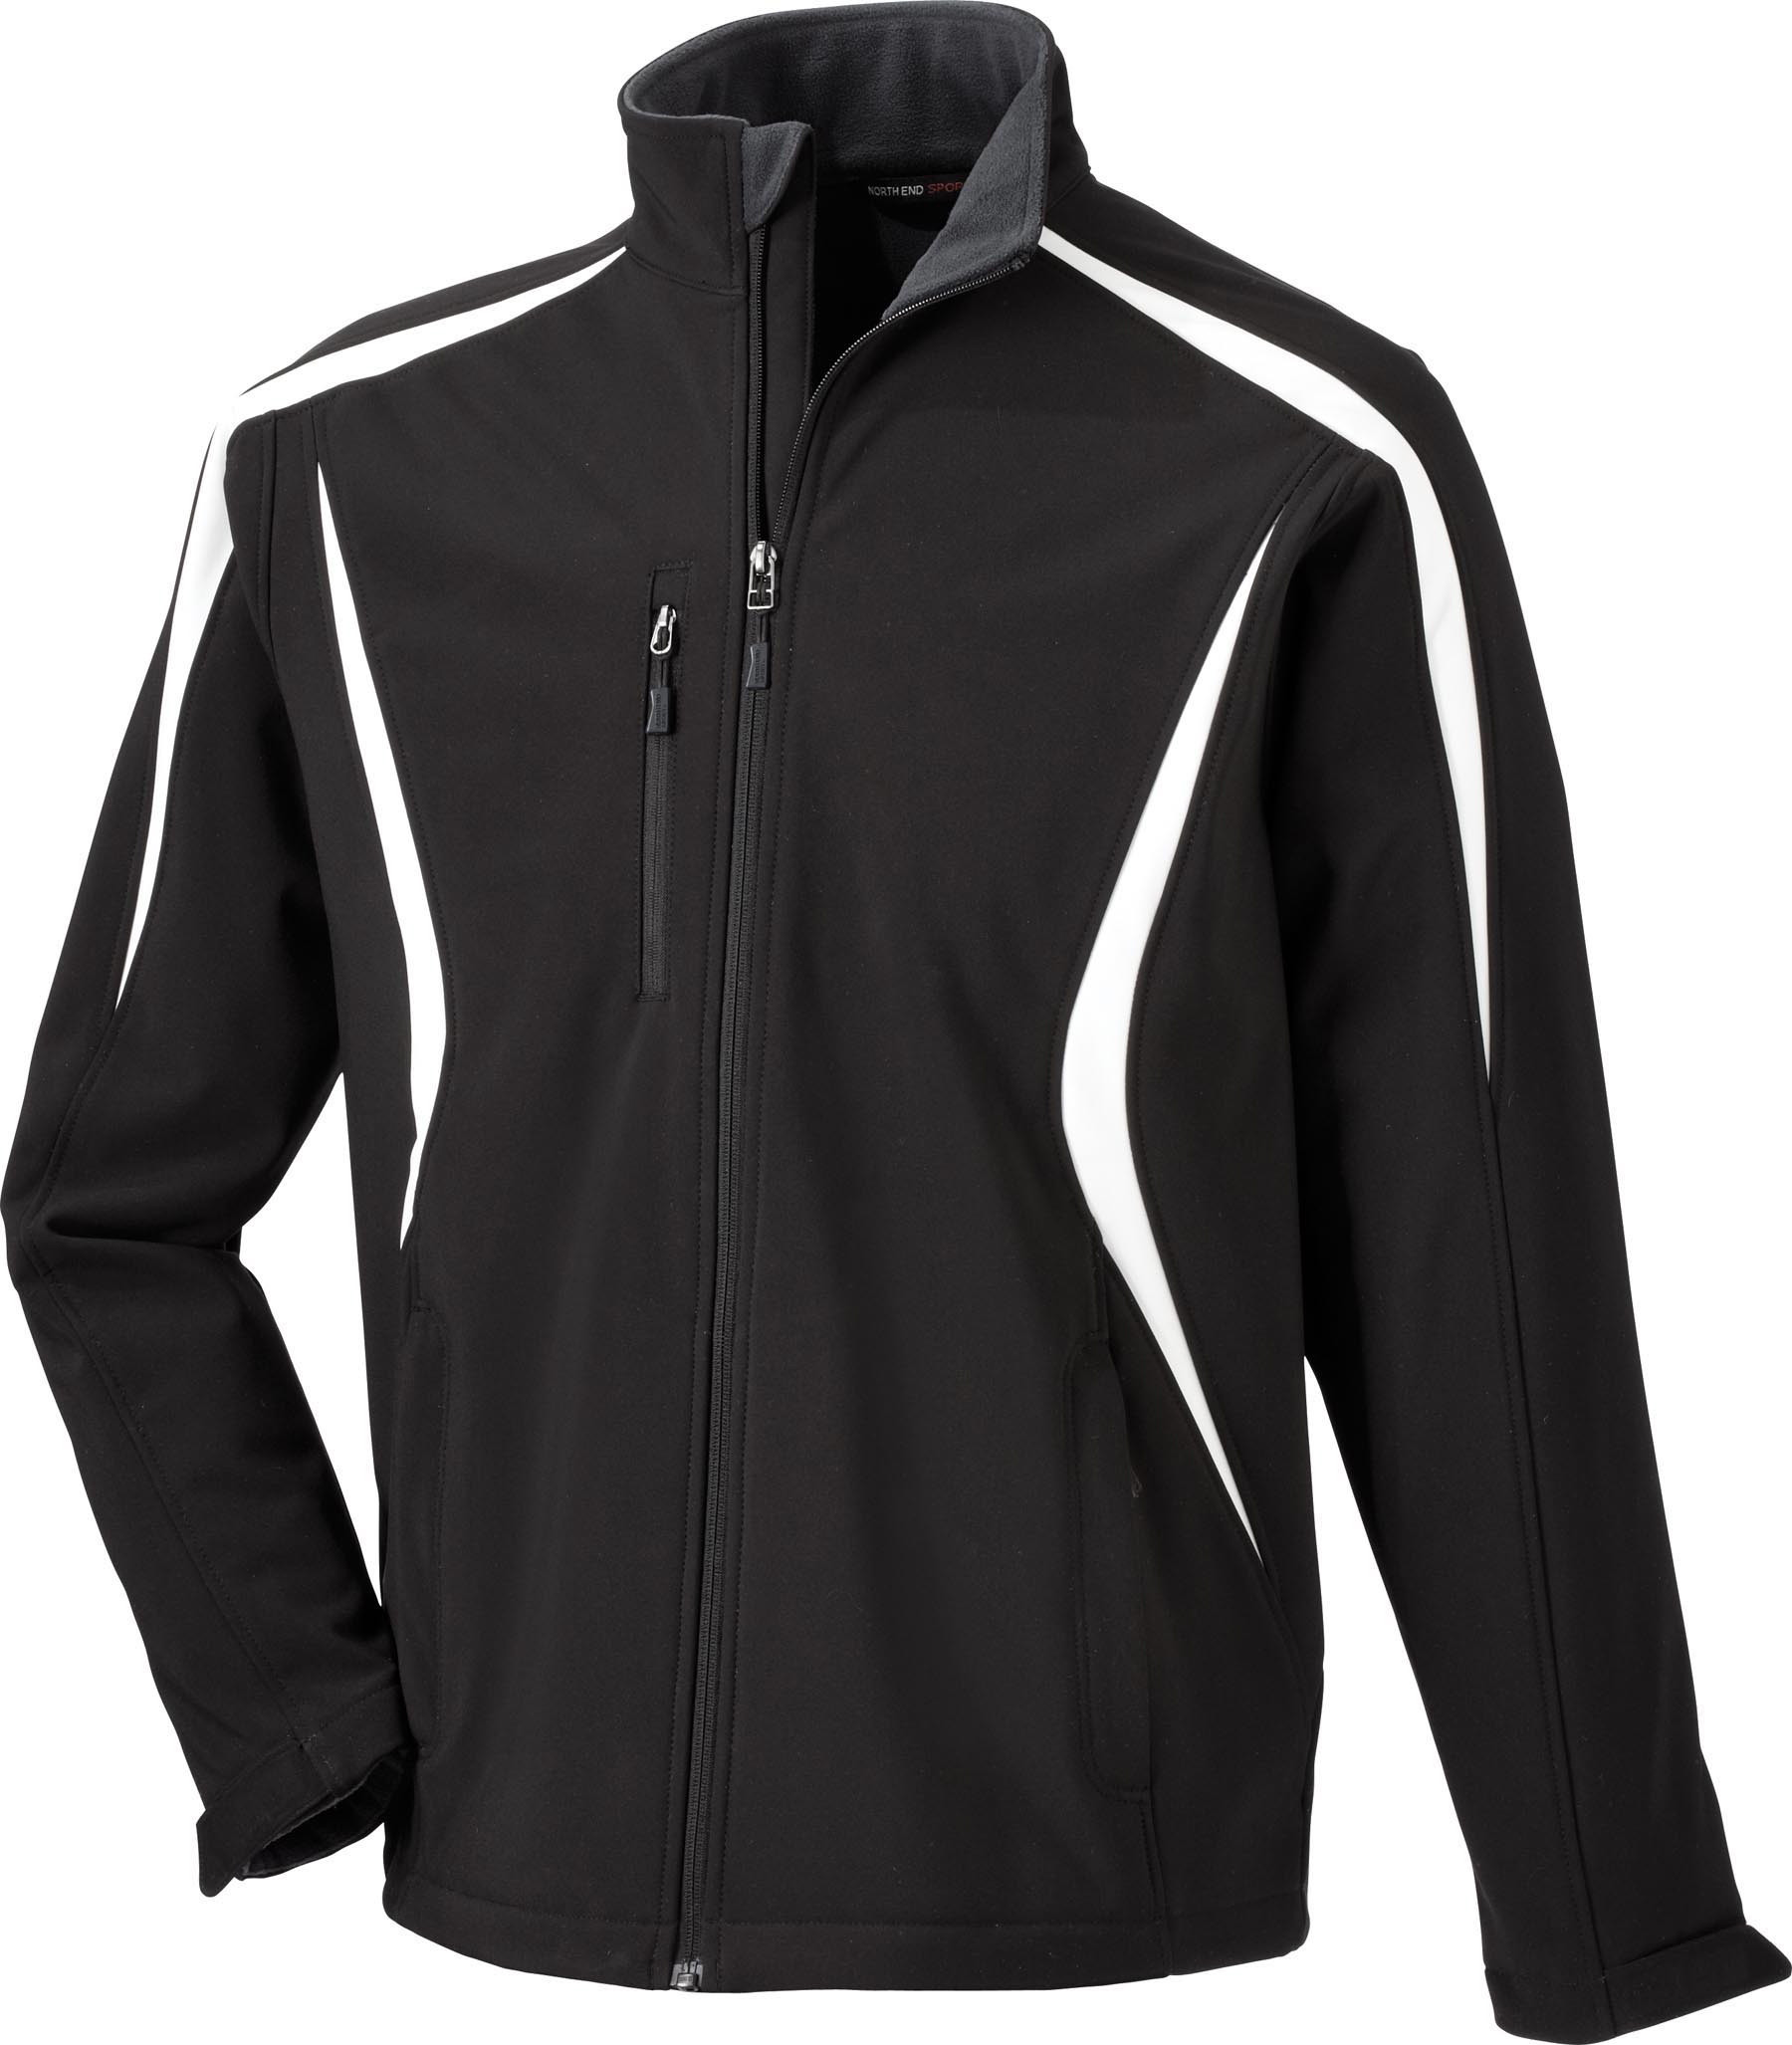 Ash City UTK 1 Warm.Logik 88650 - Enzo Men's Color-Block Soft Shell Jacket